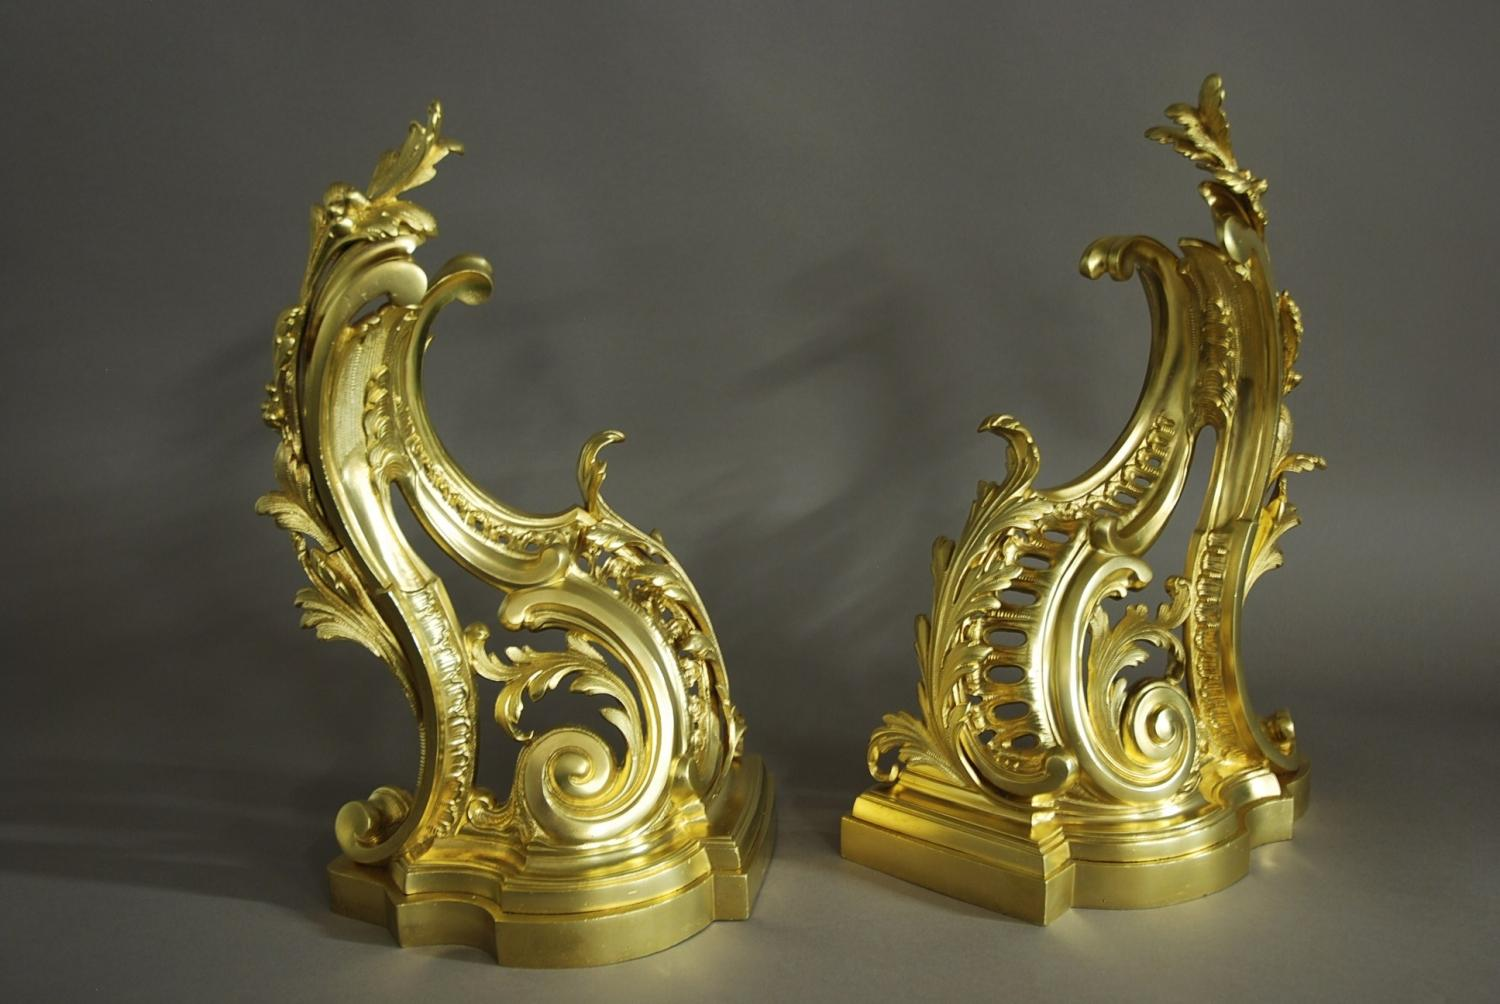 Pair of rococo style ormolu chenets in decorative for What is the other name for the rococo style